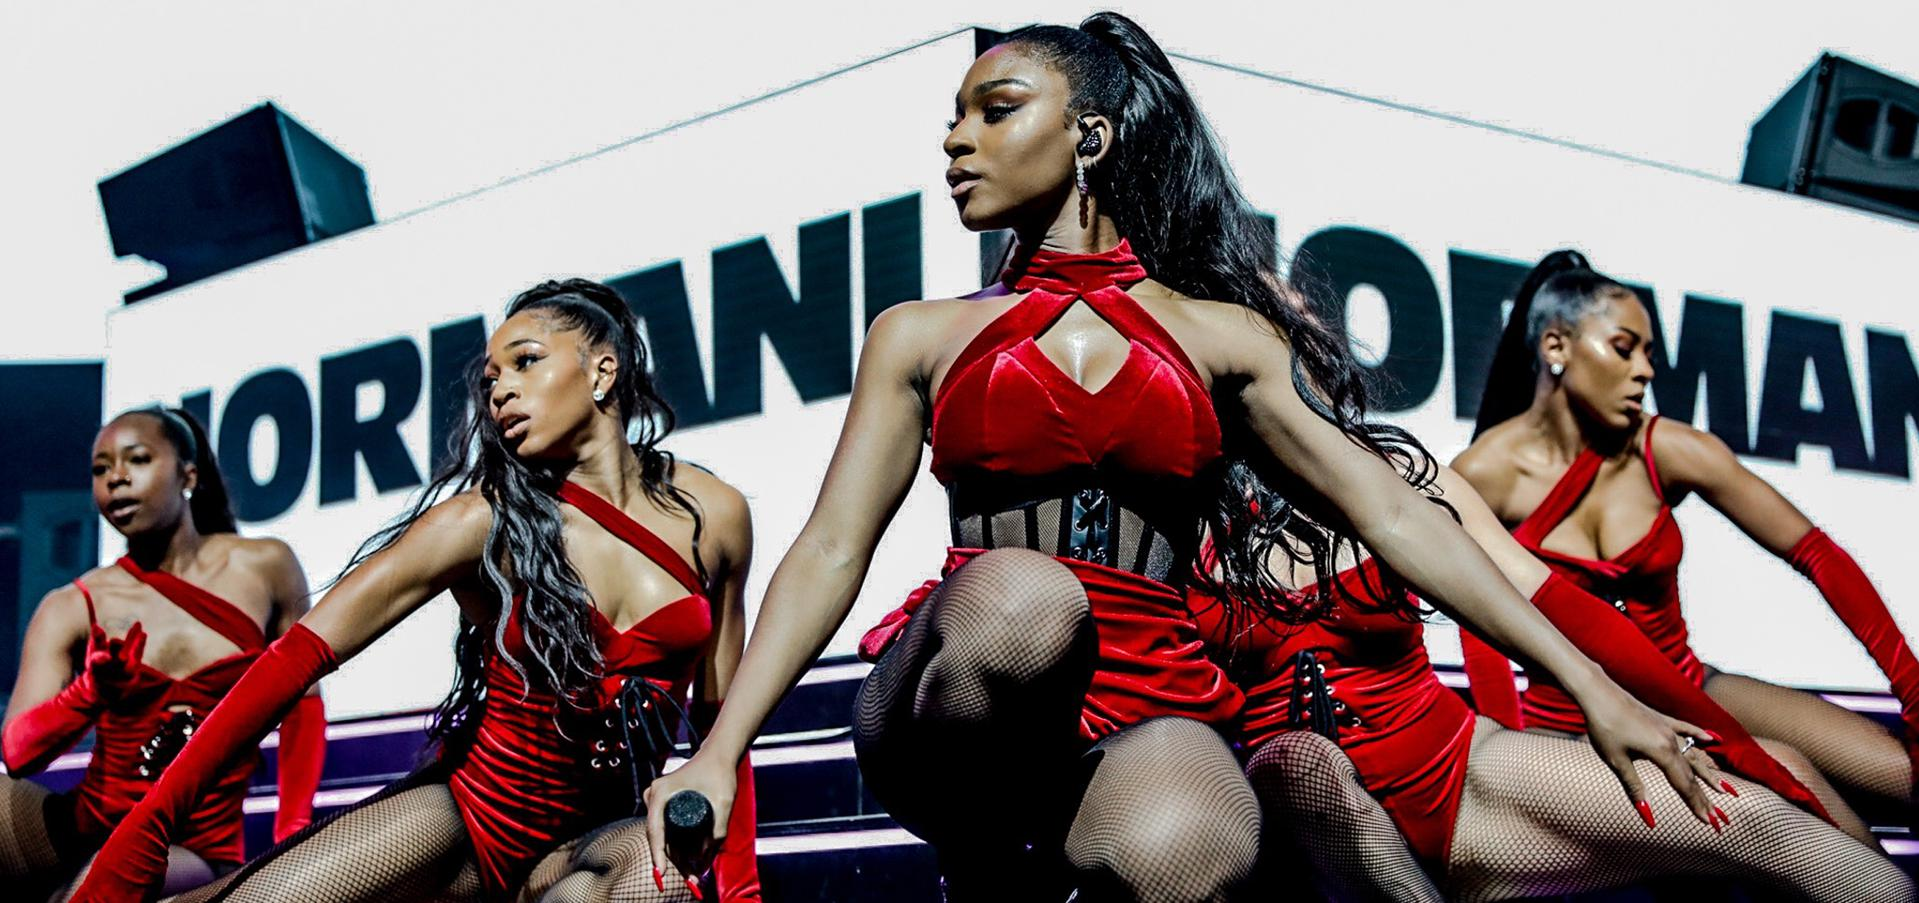 Some Call Normani The Next Beyoncé—With 3 Billion Streams, This 30 Under 30 Breakout Is On Her Way